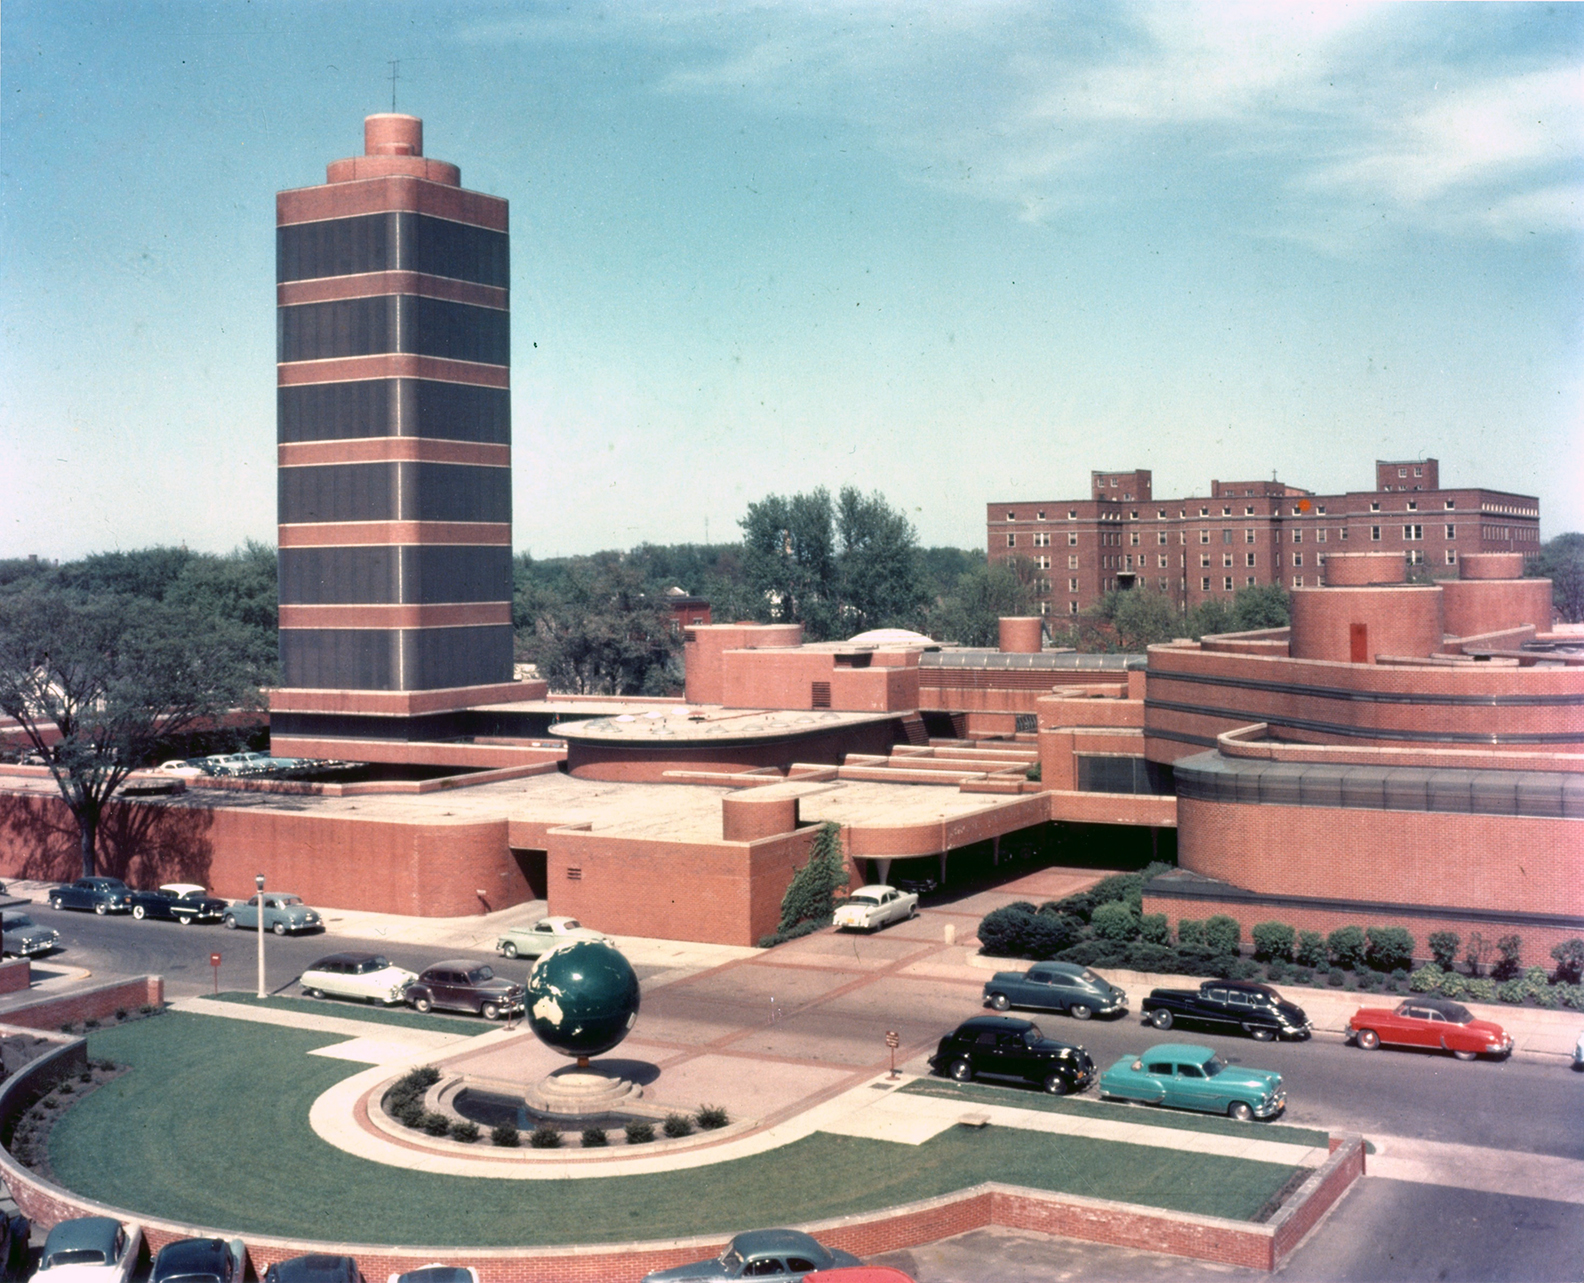 Johnson Wax Research Tower Tour